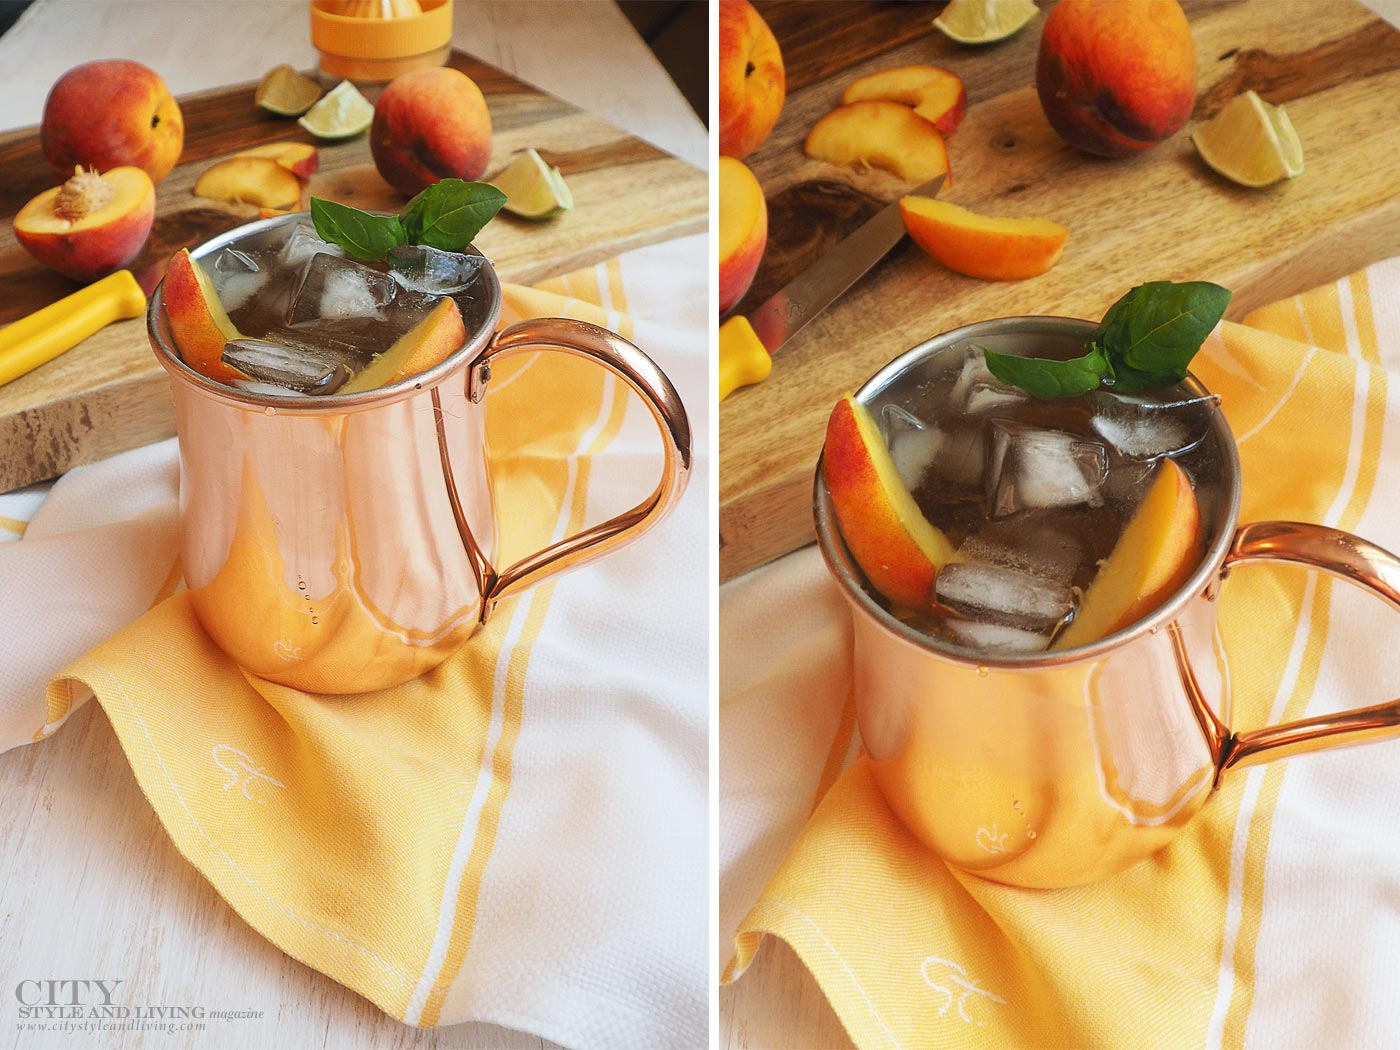 City Style and Living Magazine peach moscow mule final copper mug